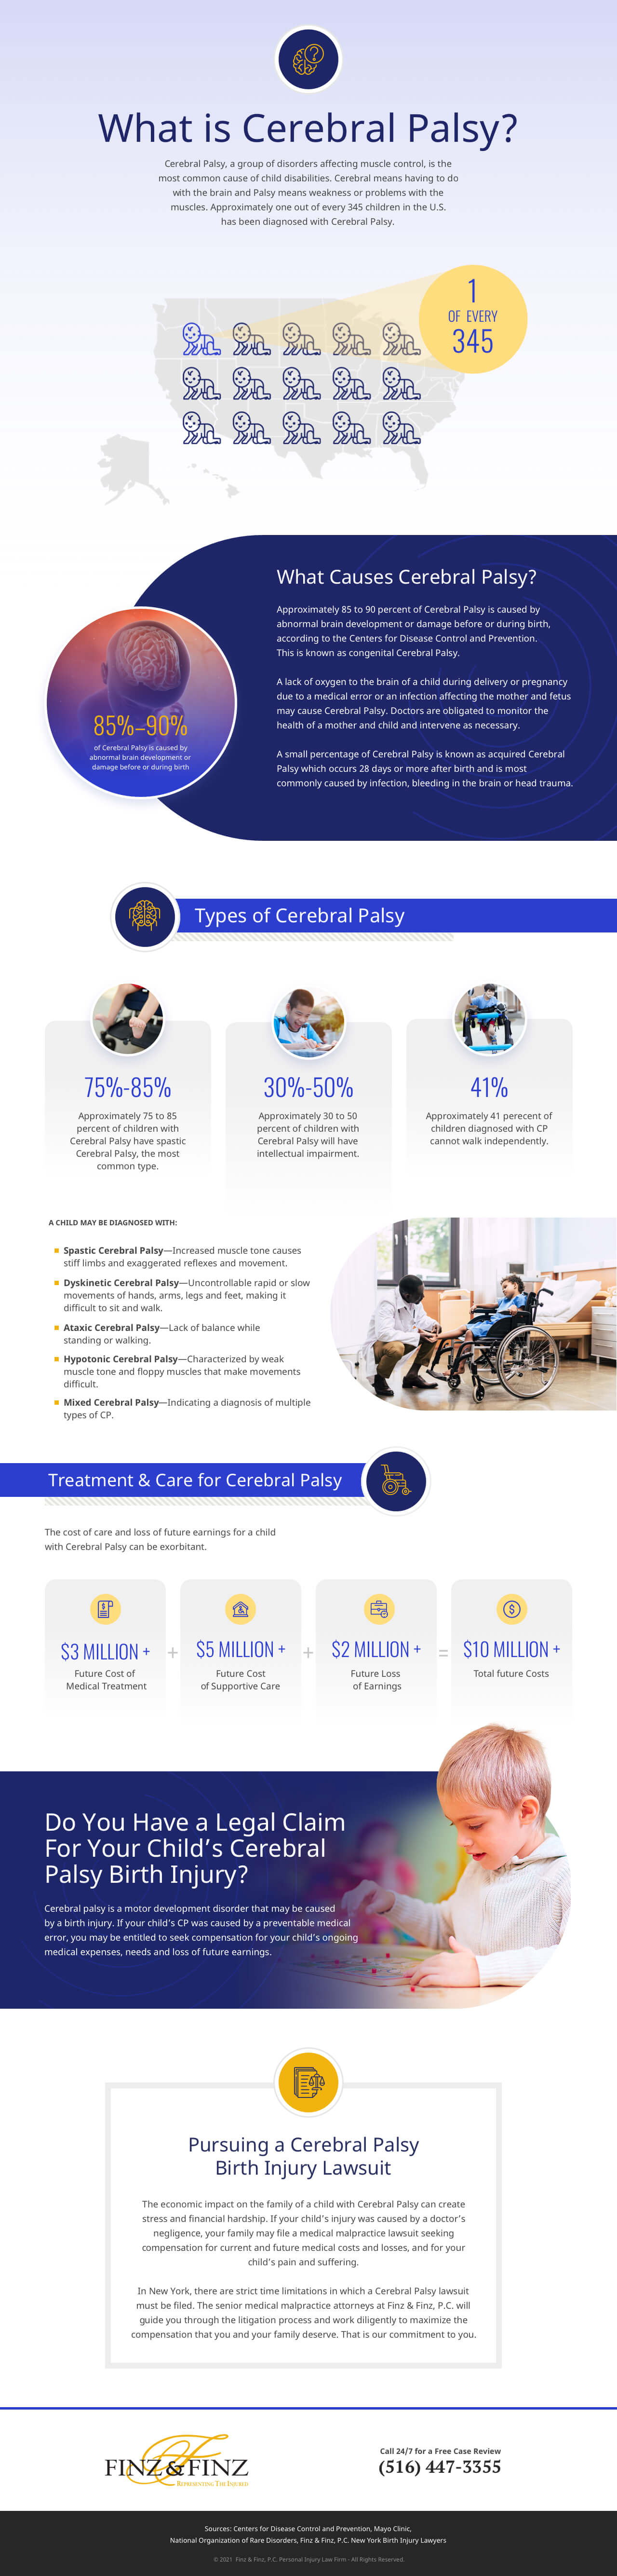 Cerebral Palsy Birth Injury Facts and Figures - Infographic